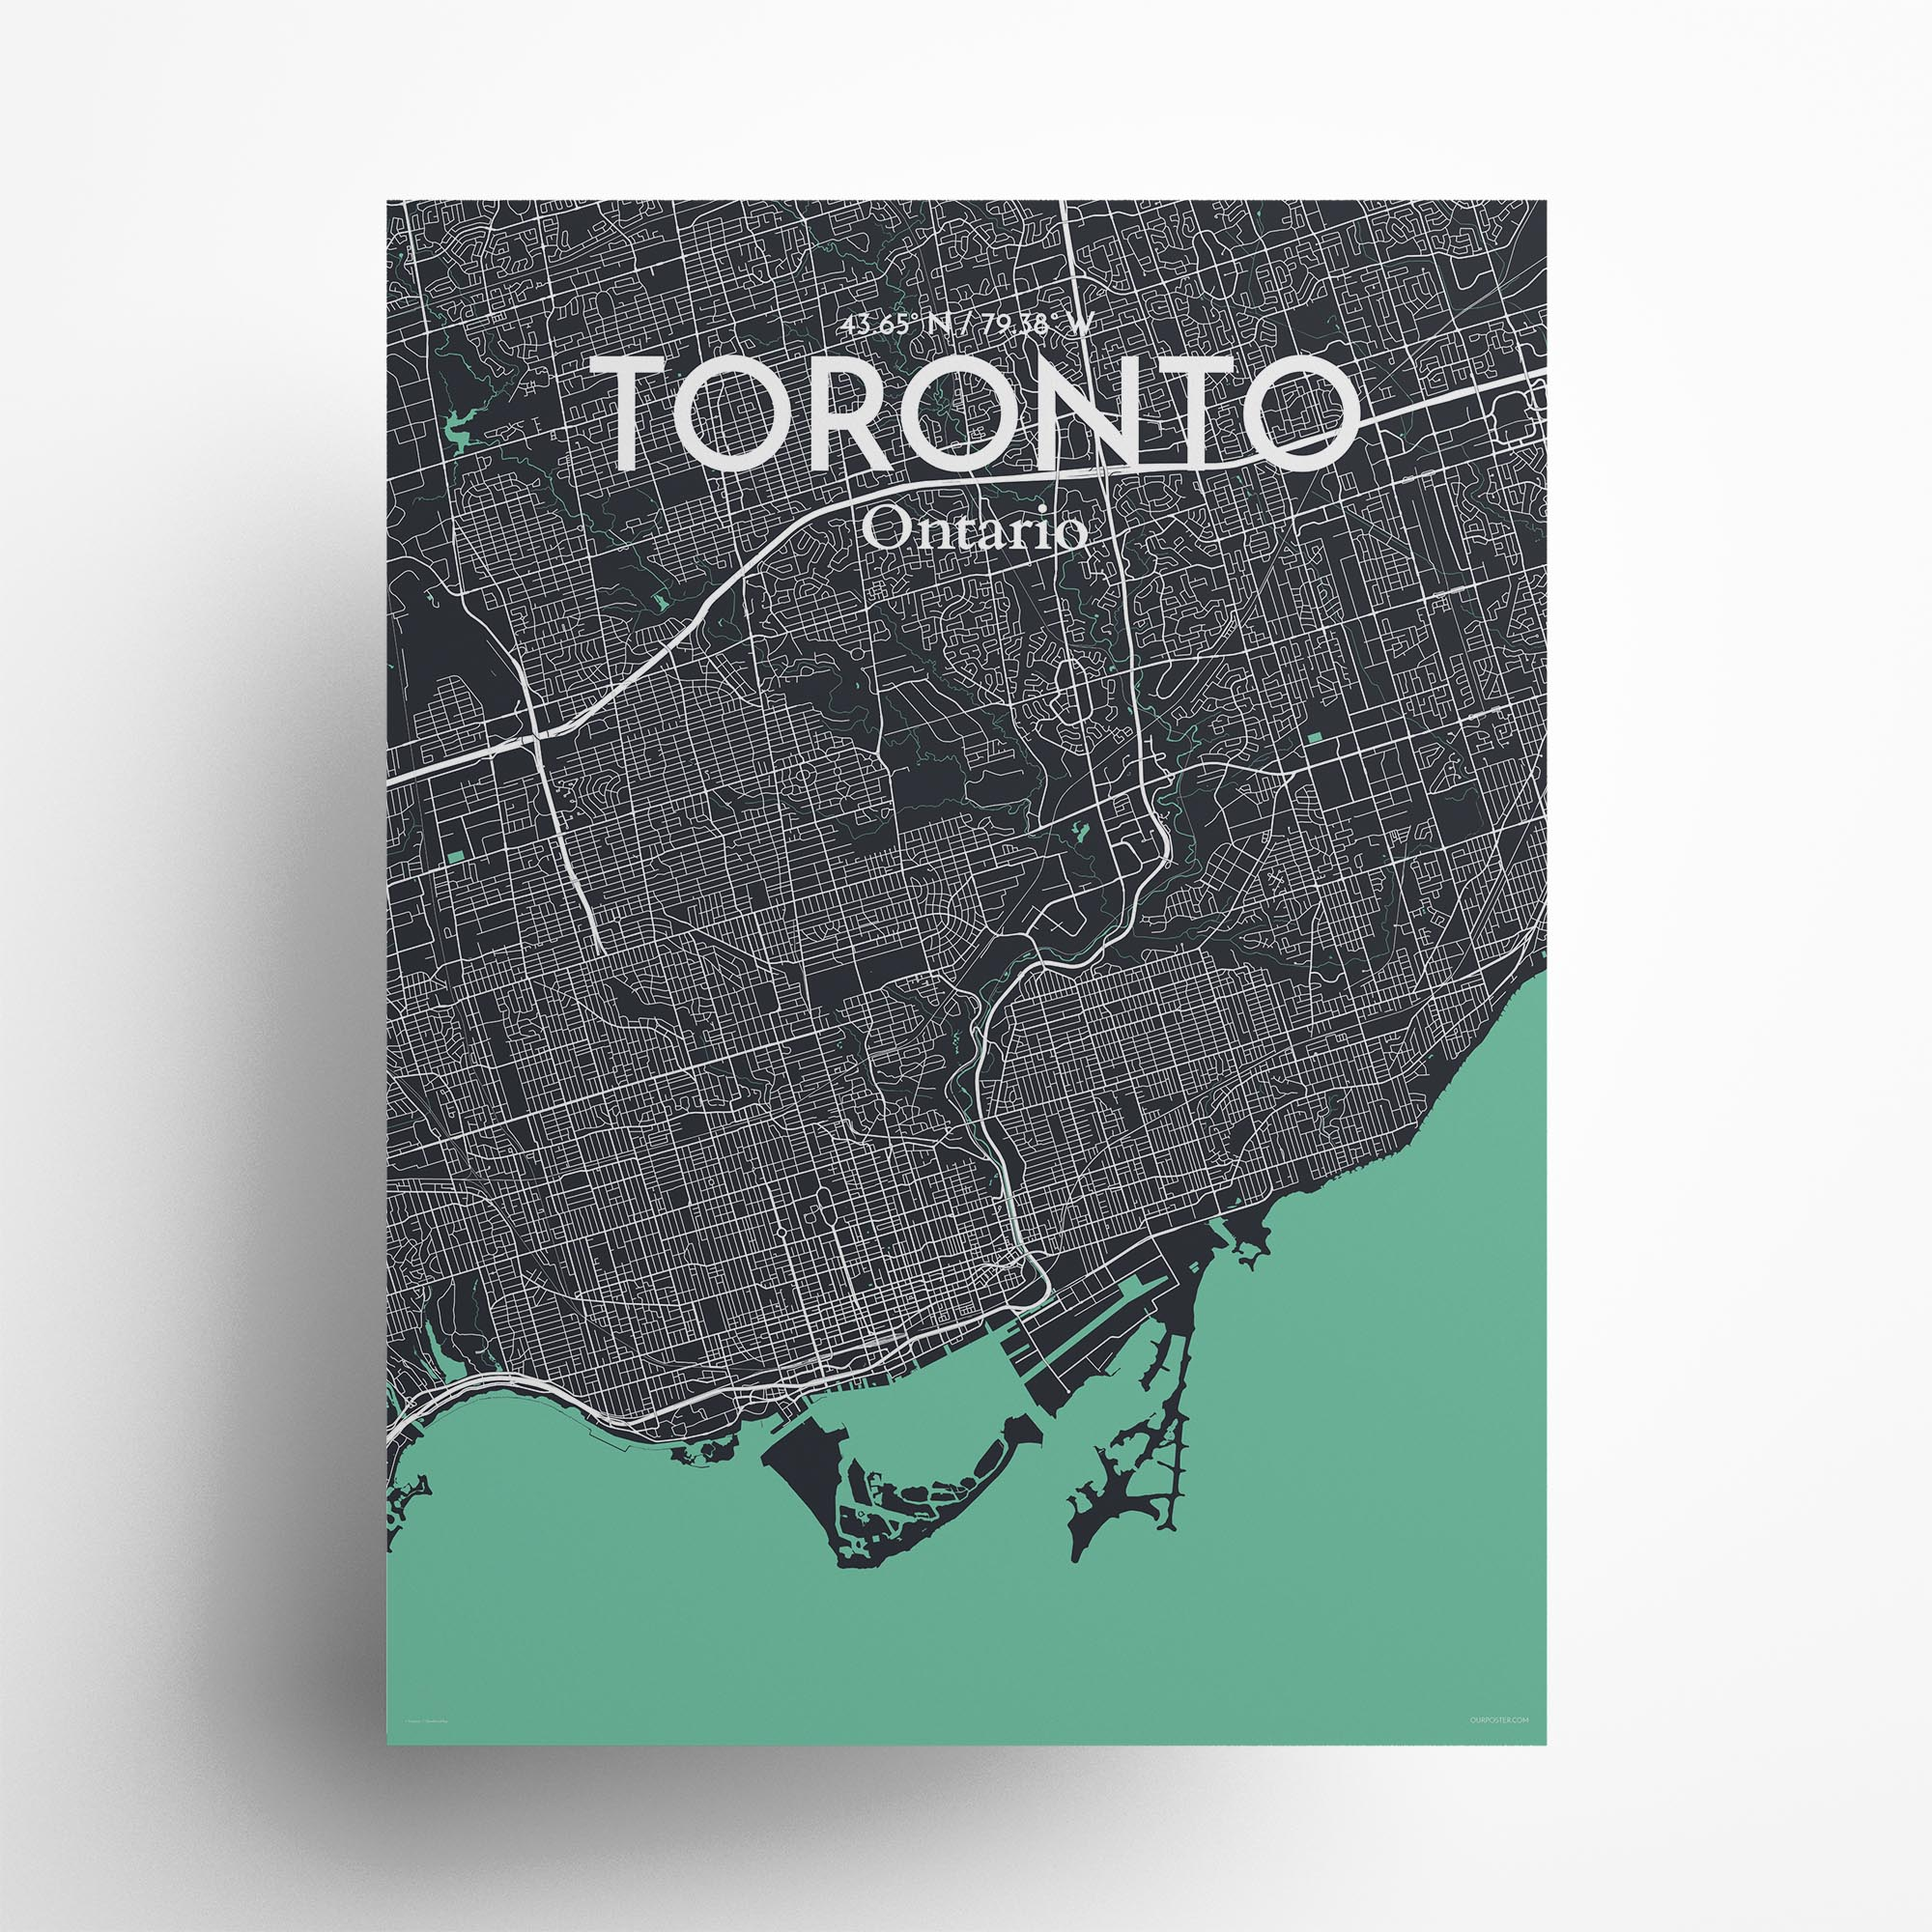 "Toronto city map poster in Dream of size 18"" x 24"""